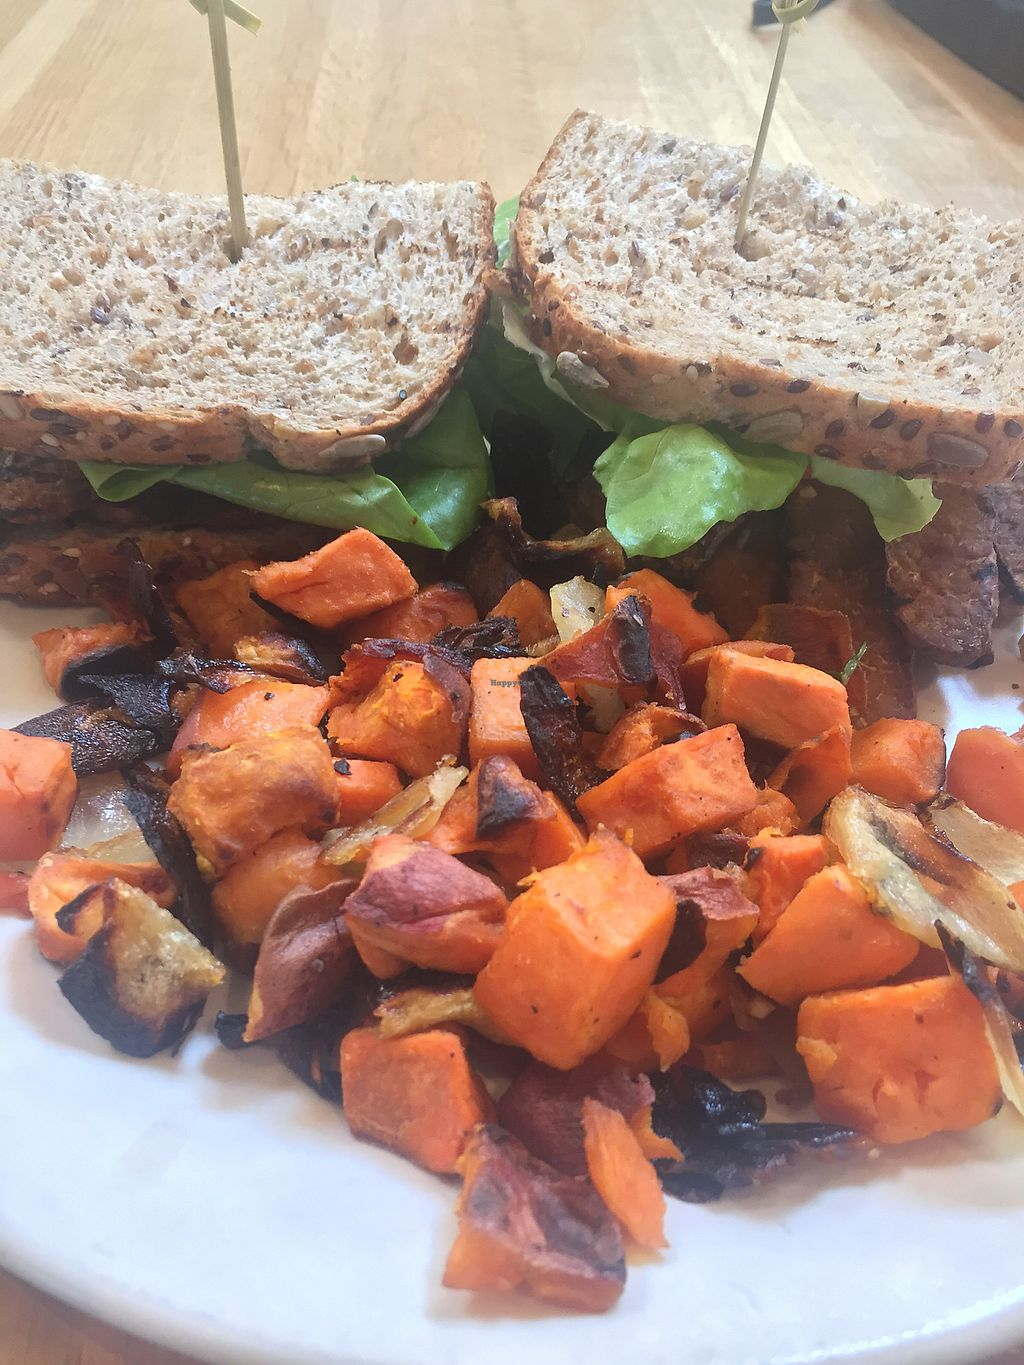 "Photo of True Food Kitchen  by <a href=""/members/profile/Renae"">Renae</a> <br/>TLT (tempeh lettuce tomato) sandwich & sweet potatoes yum! <br/> September 5, 2017  - <a href='/contact/abuse/image/27444/301050'>Report</a>"